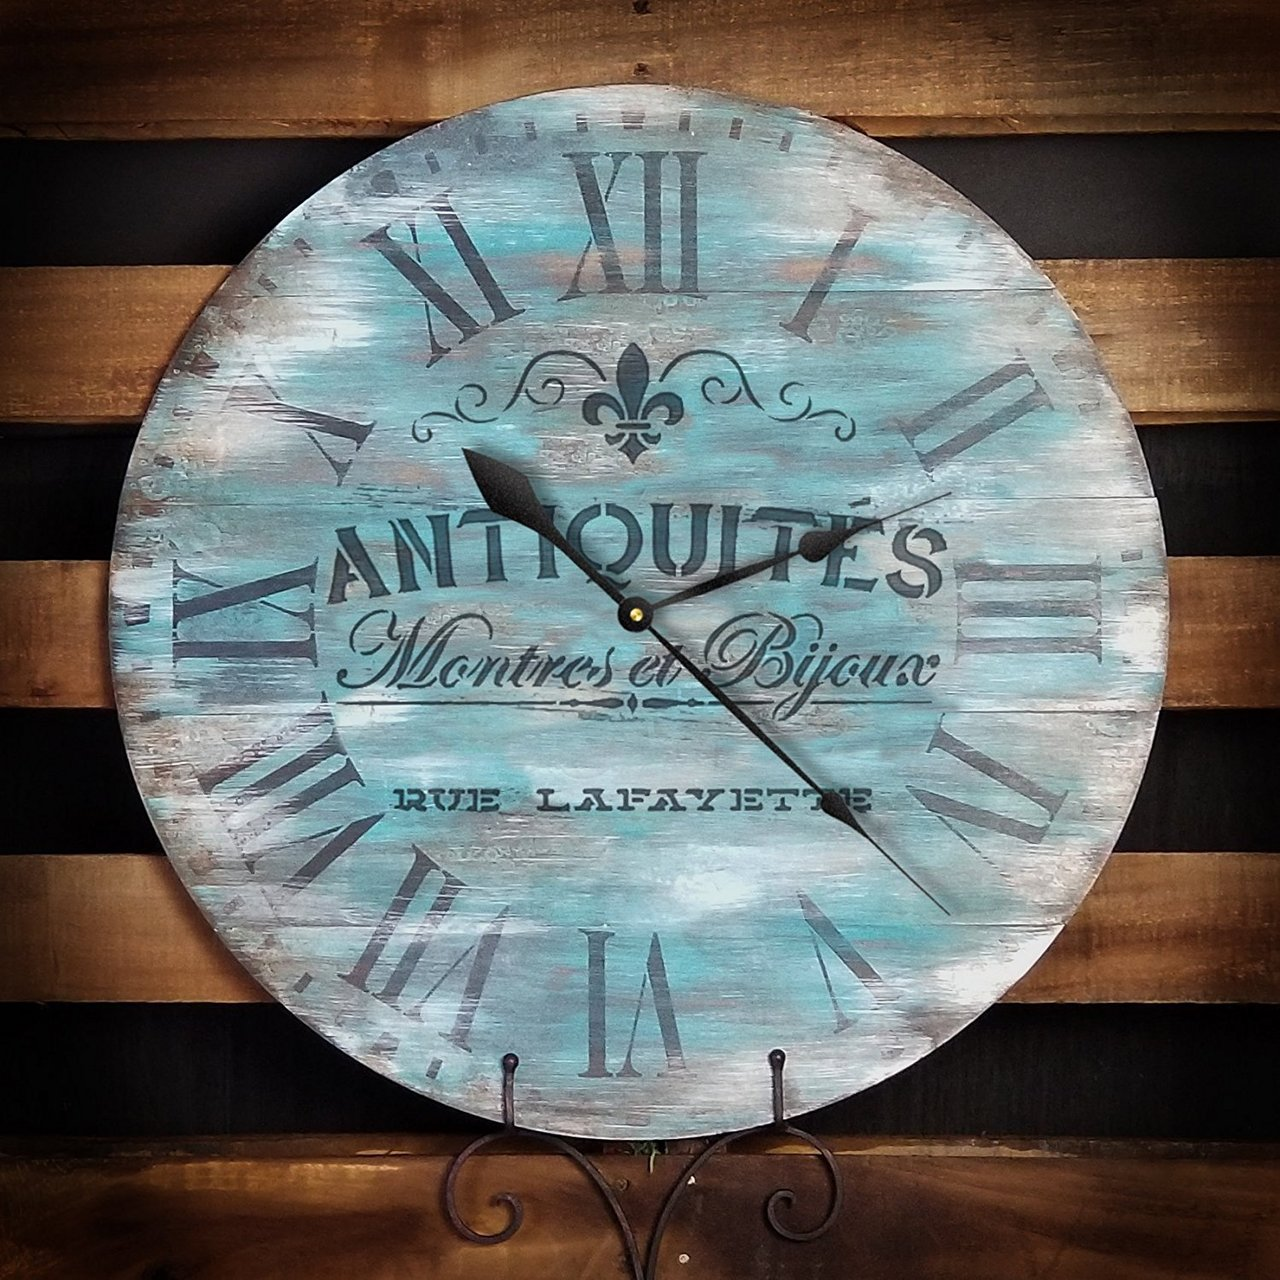 Round Clock Stencil - Roman Numerals - French Antique Words - DIY Painting Vintage Country Farmhouse Home Decor Walls - STCL2424 - Select Size